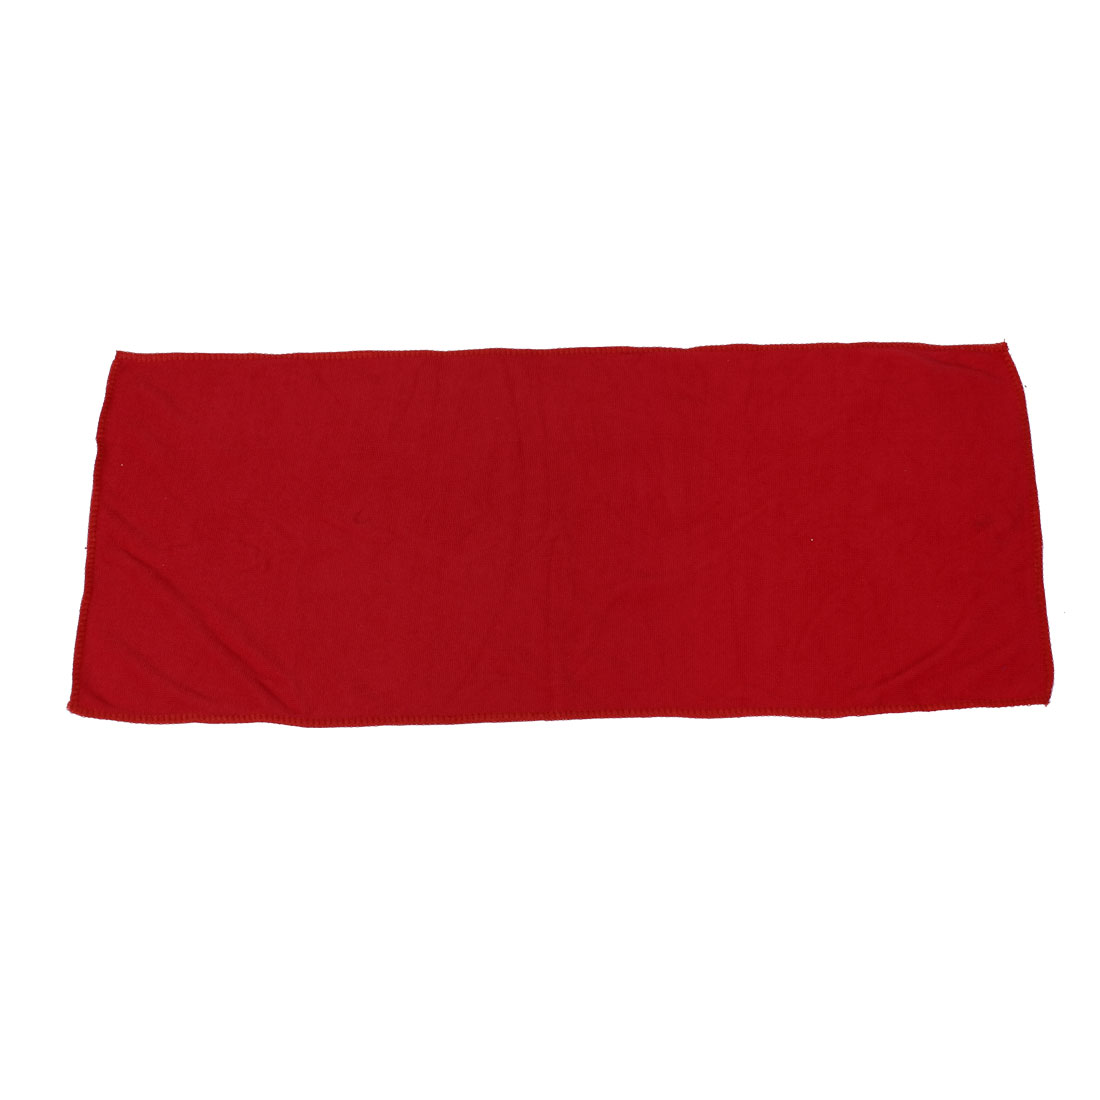 Travel Camping Red Microfiber Water Absorbent Hair Drying Bath Towel Spa Wash Washcloth 70 x 30cm